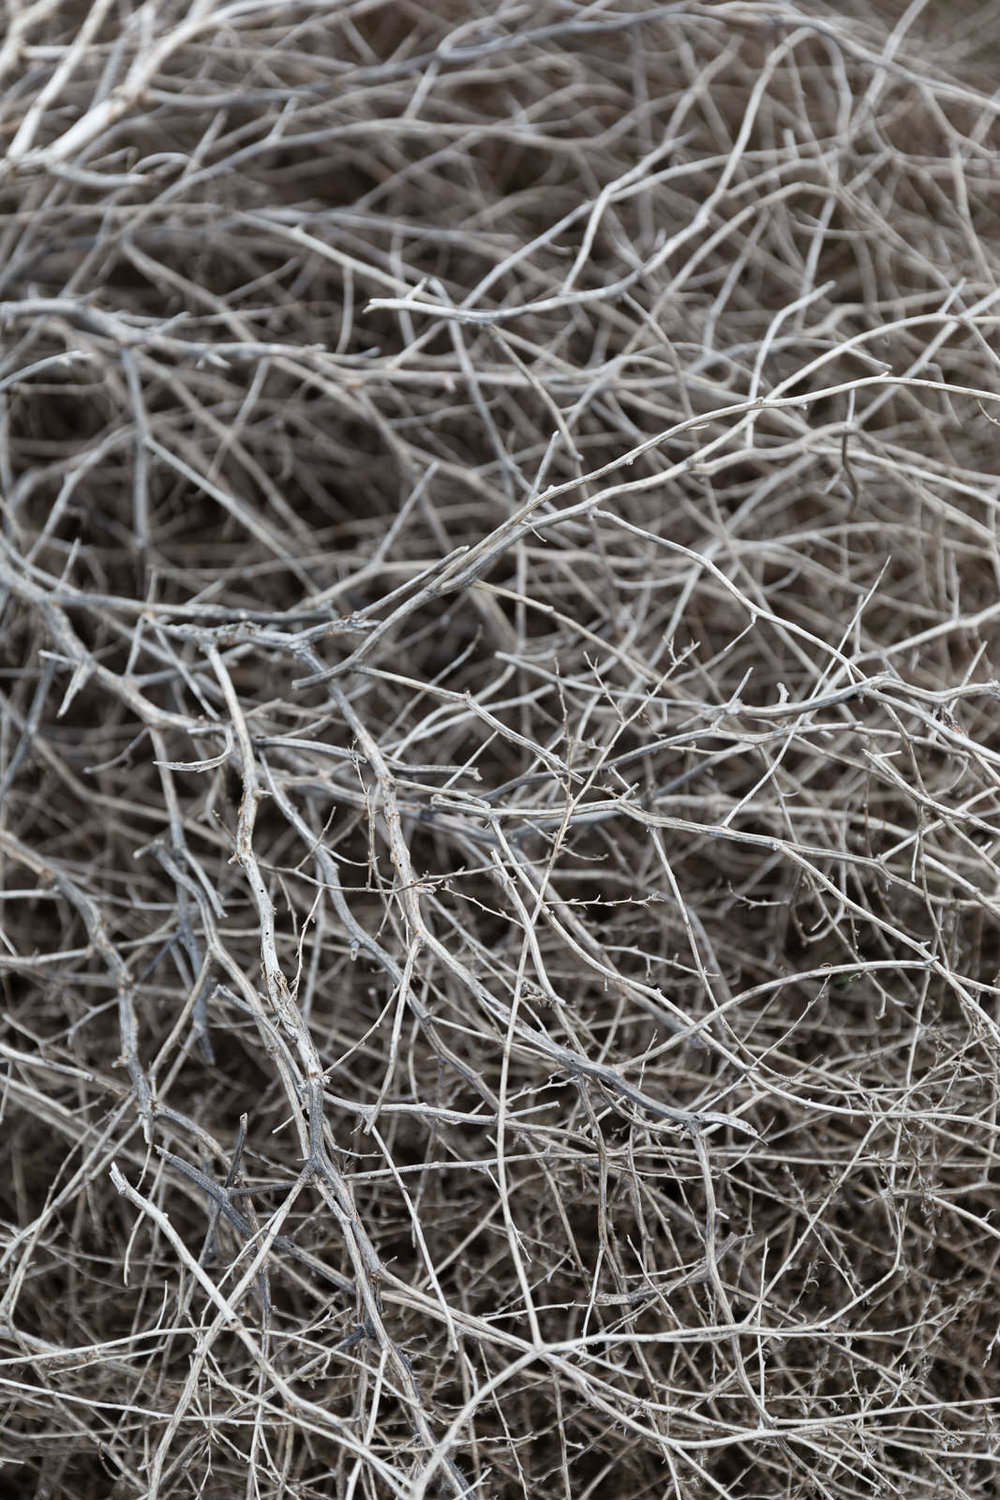 Dried sagebrush